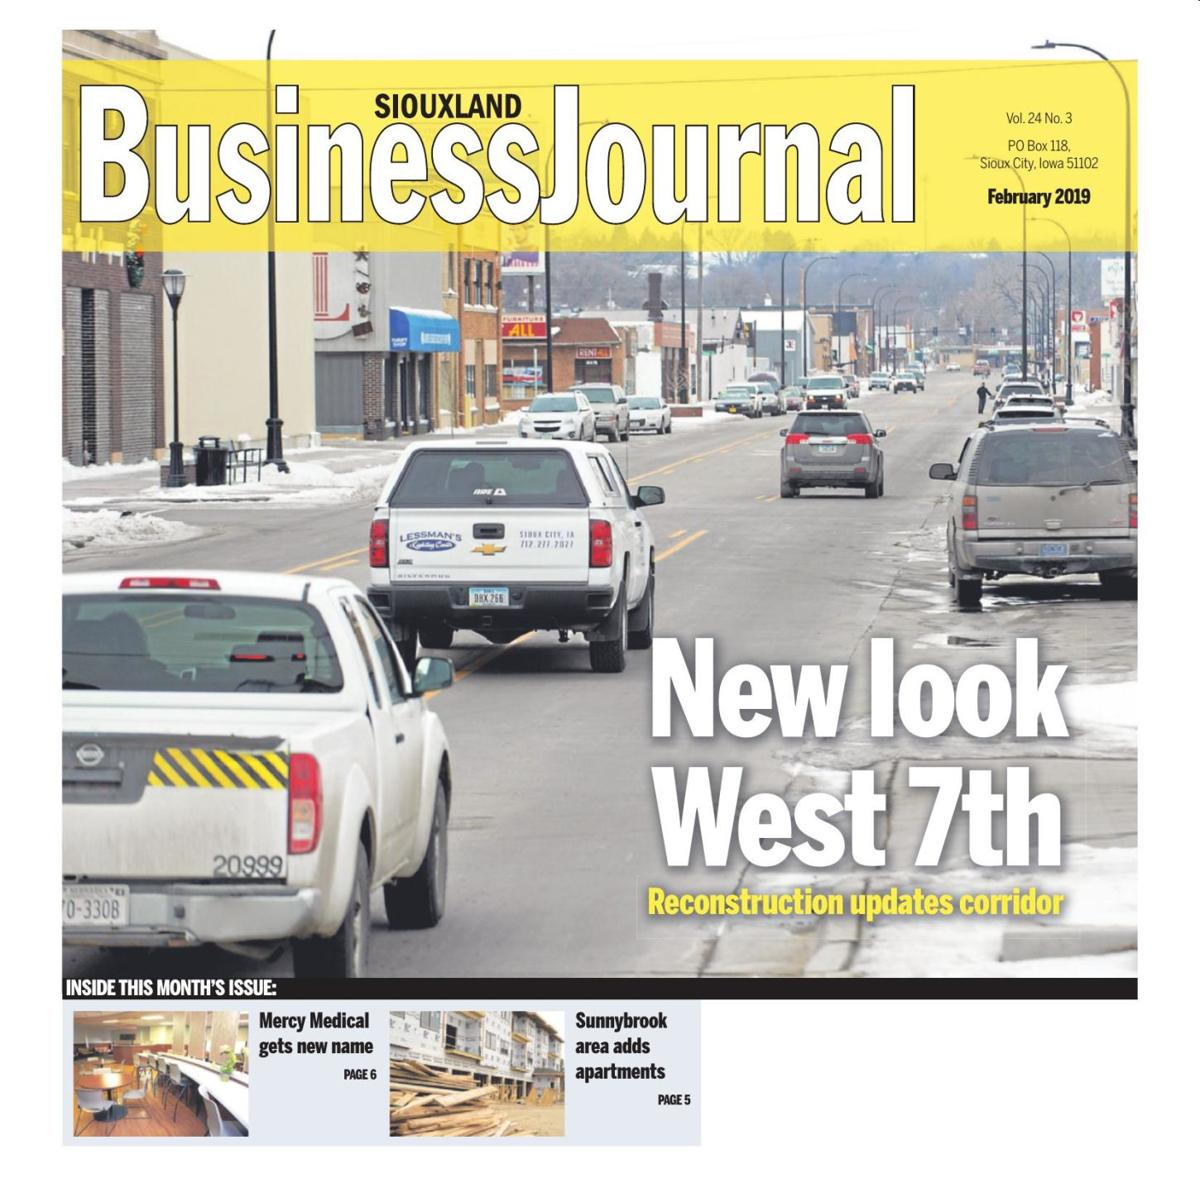 Siouxland Business Journal - February 2019